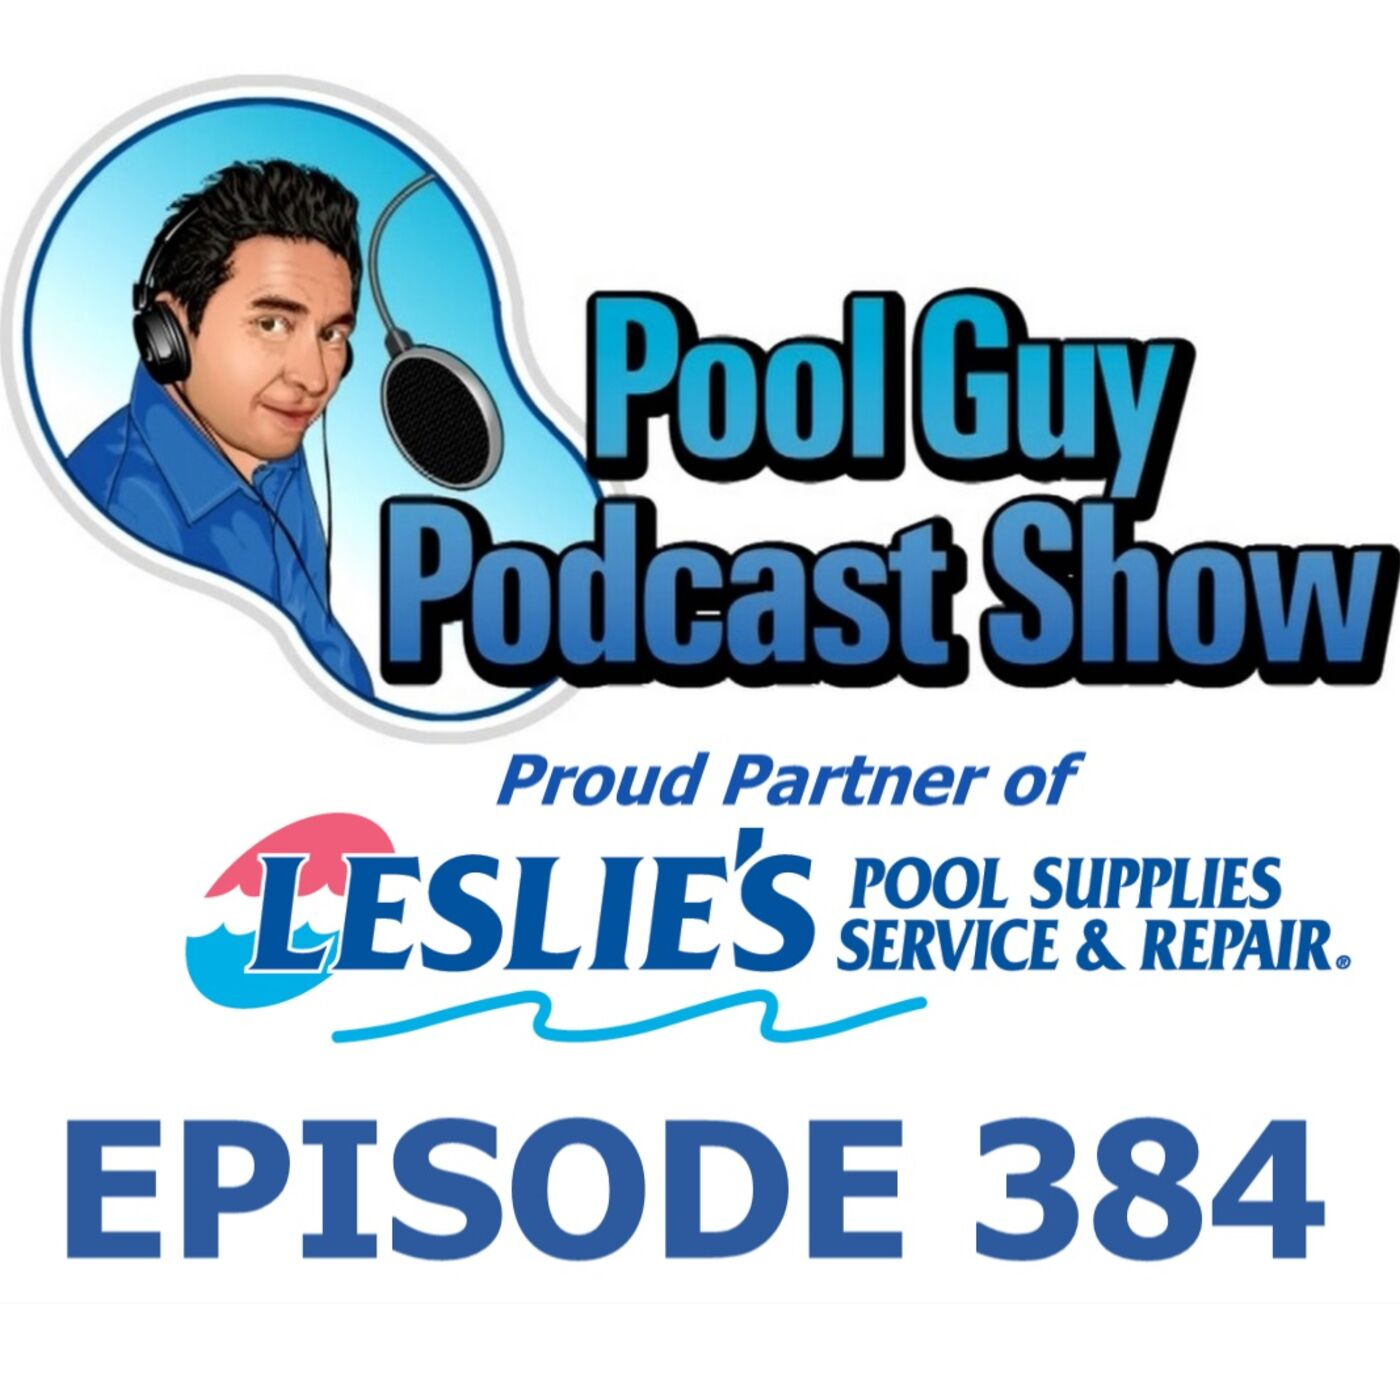 Equipment You Need to Start a Pool Service or Clean Your Own Pool